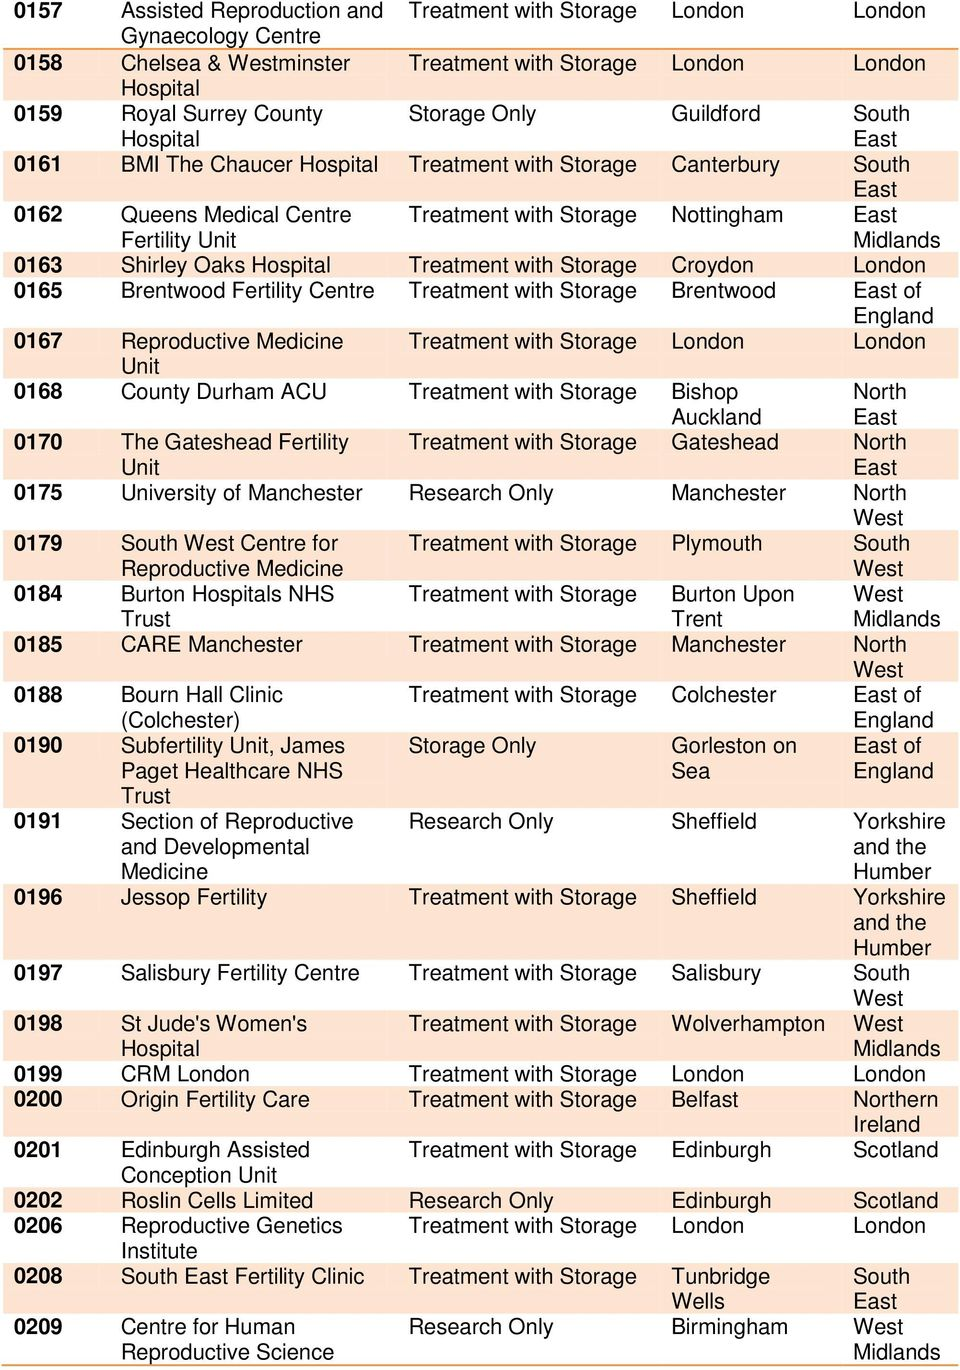 North 0175 University of Manchester Research Only Manchester North 0179 for Plymouth 0184 Burton s NHS Burton Upon Trent 0185 CARE Manchester Manchester North 0188 Bourn Hall Clinic (Colchester)